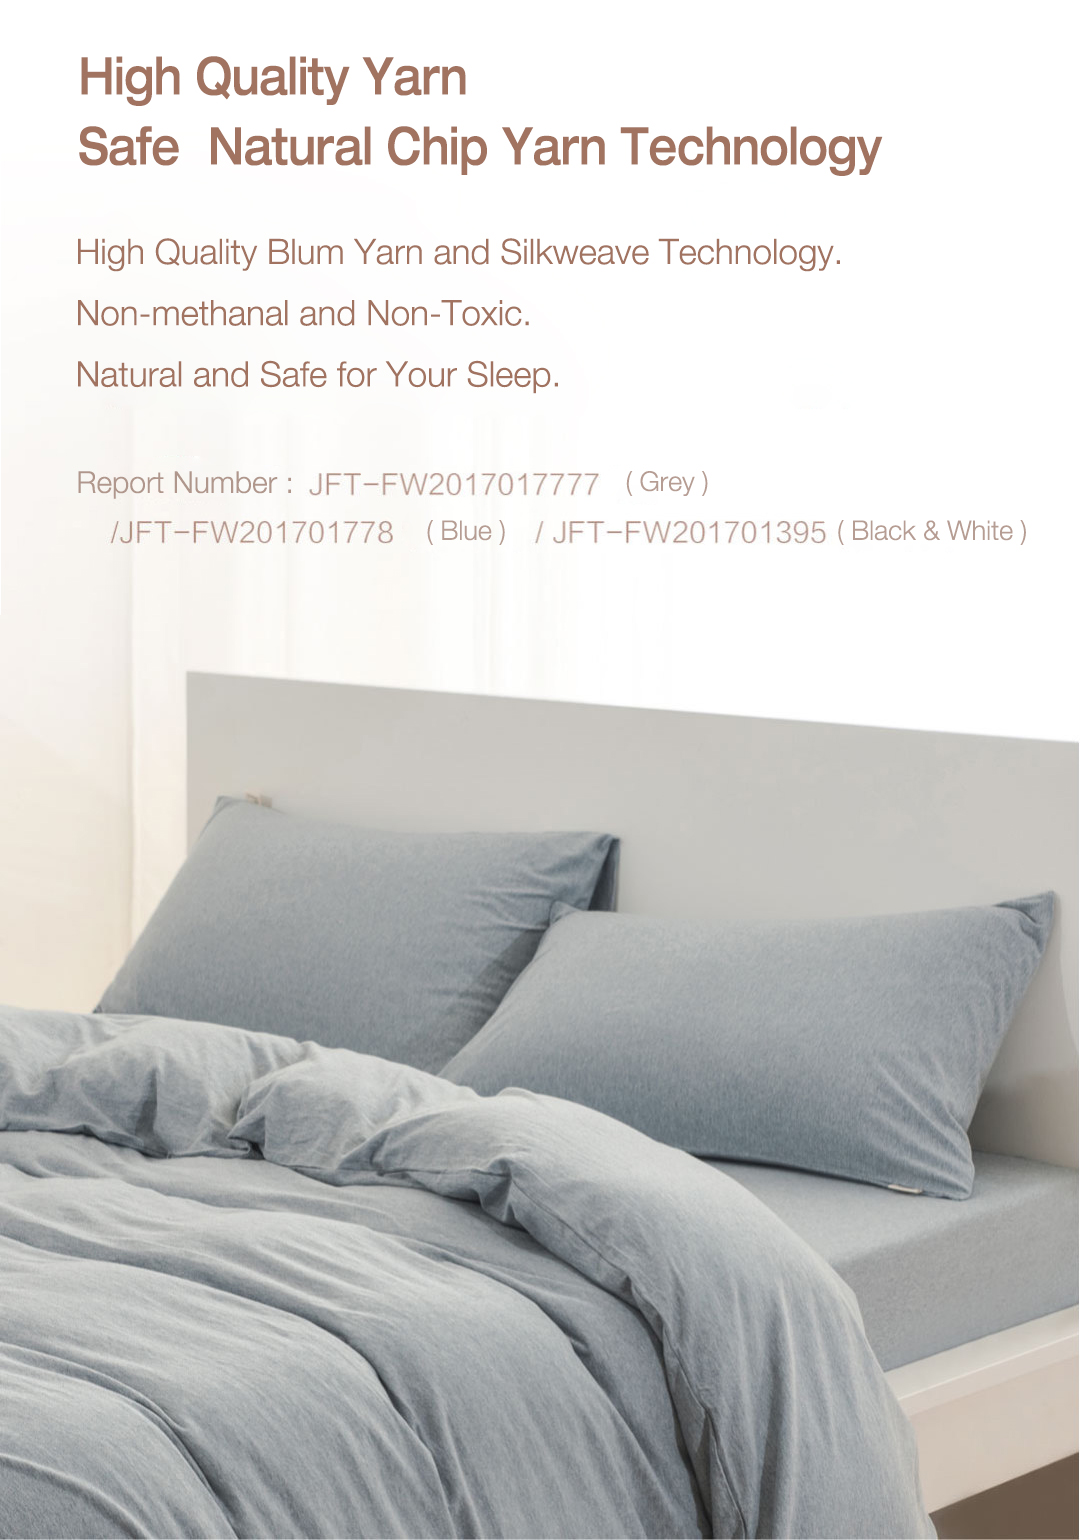 XIAOMI TIANZHU 3Pcs Simple Skin Care Soft India Cotton Fiber Knit Fabric Bedding Sets with Dual Pillowslips Quilt Cover Bed Sheet